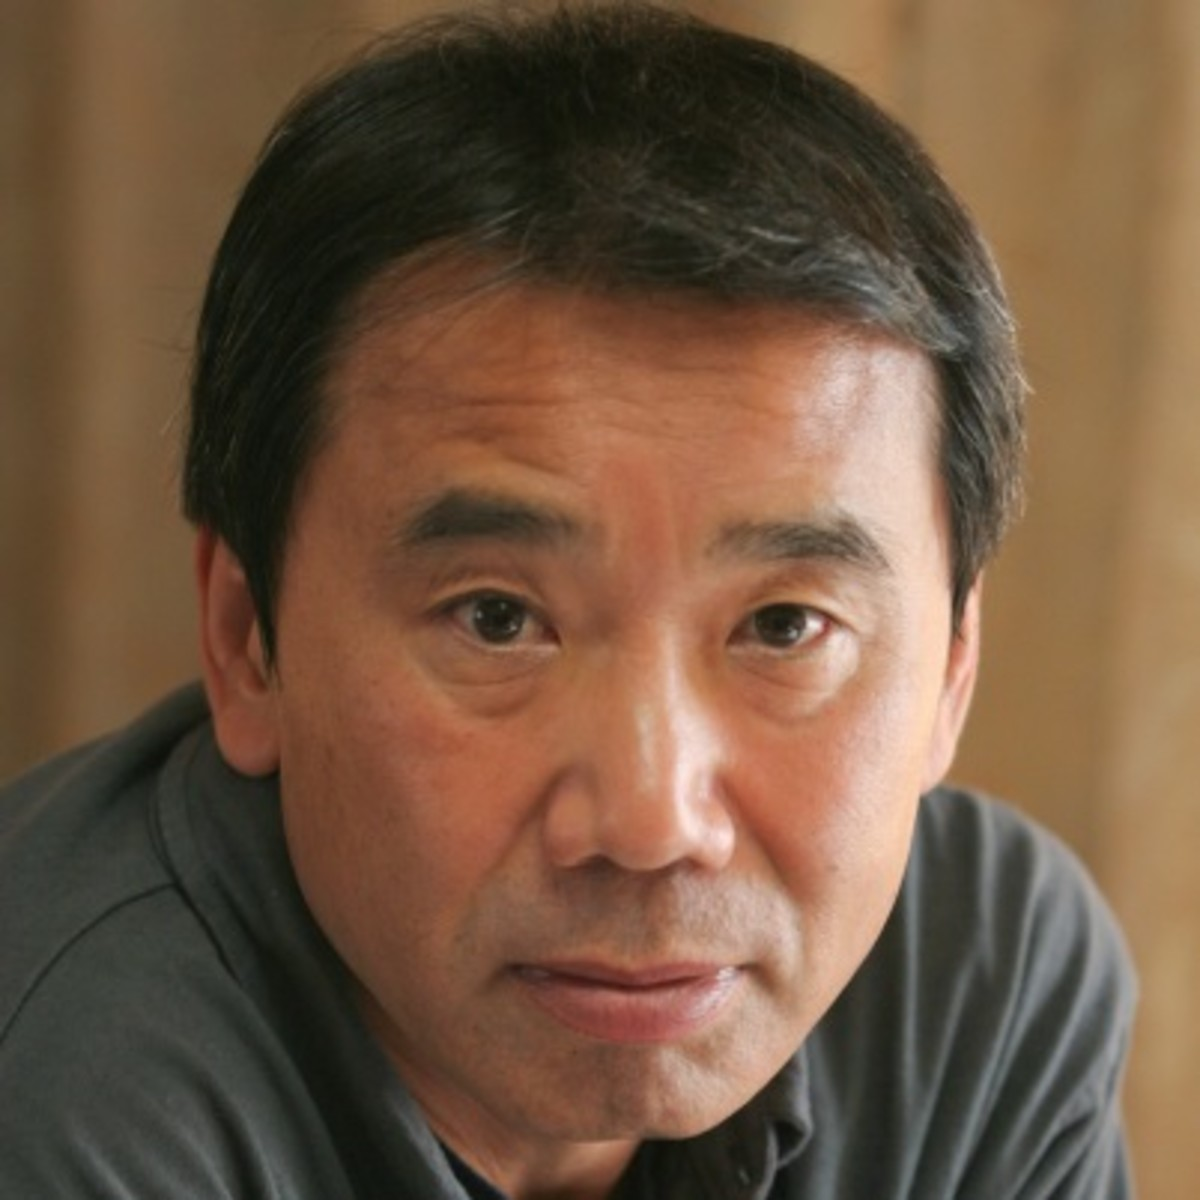 a biography of the author haruki murakami From baseball games to music, many of haruki murakami's writings have been influenced by aspects of his own life learn more about this author's biography and read some of his quotes in this lesson.